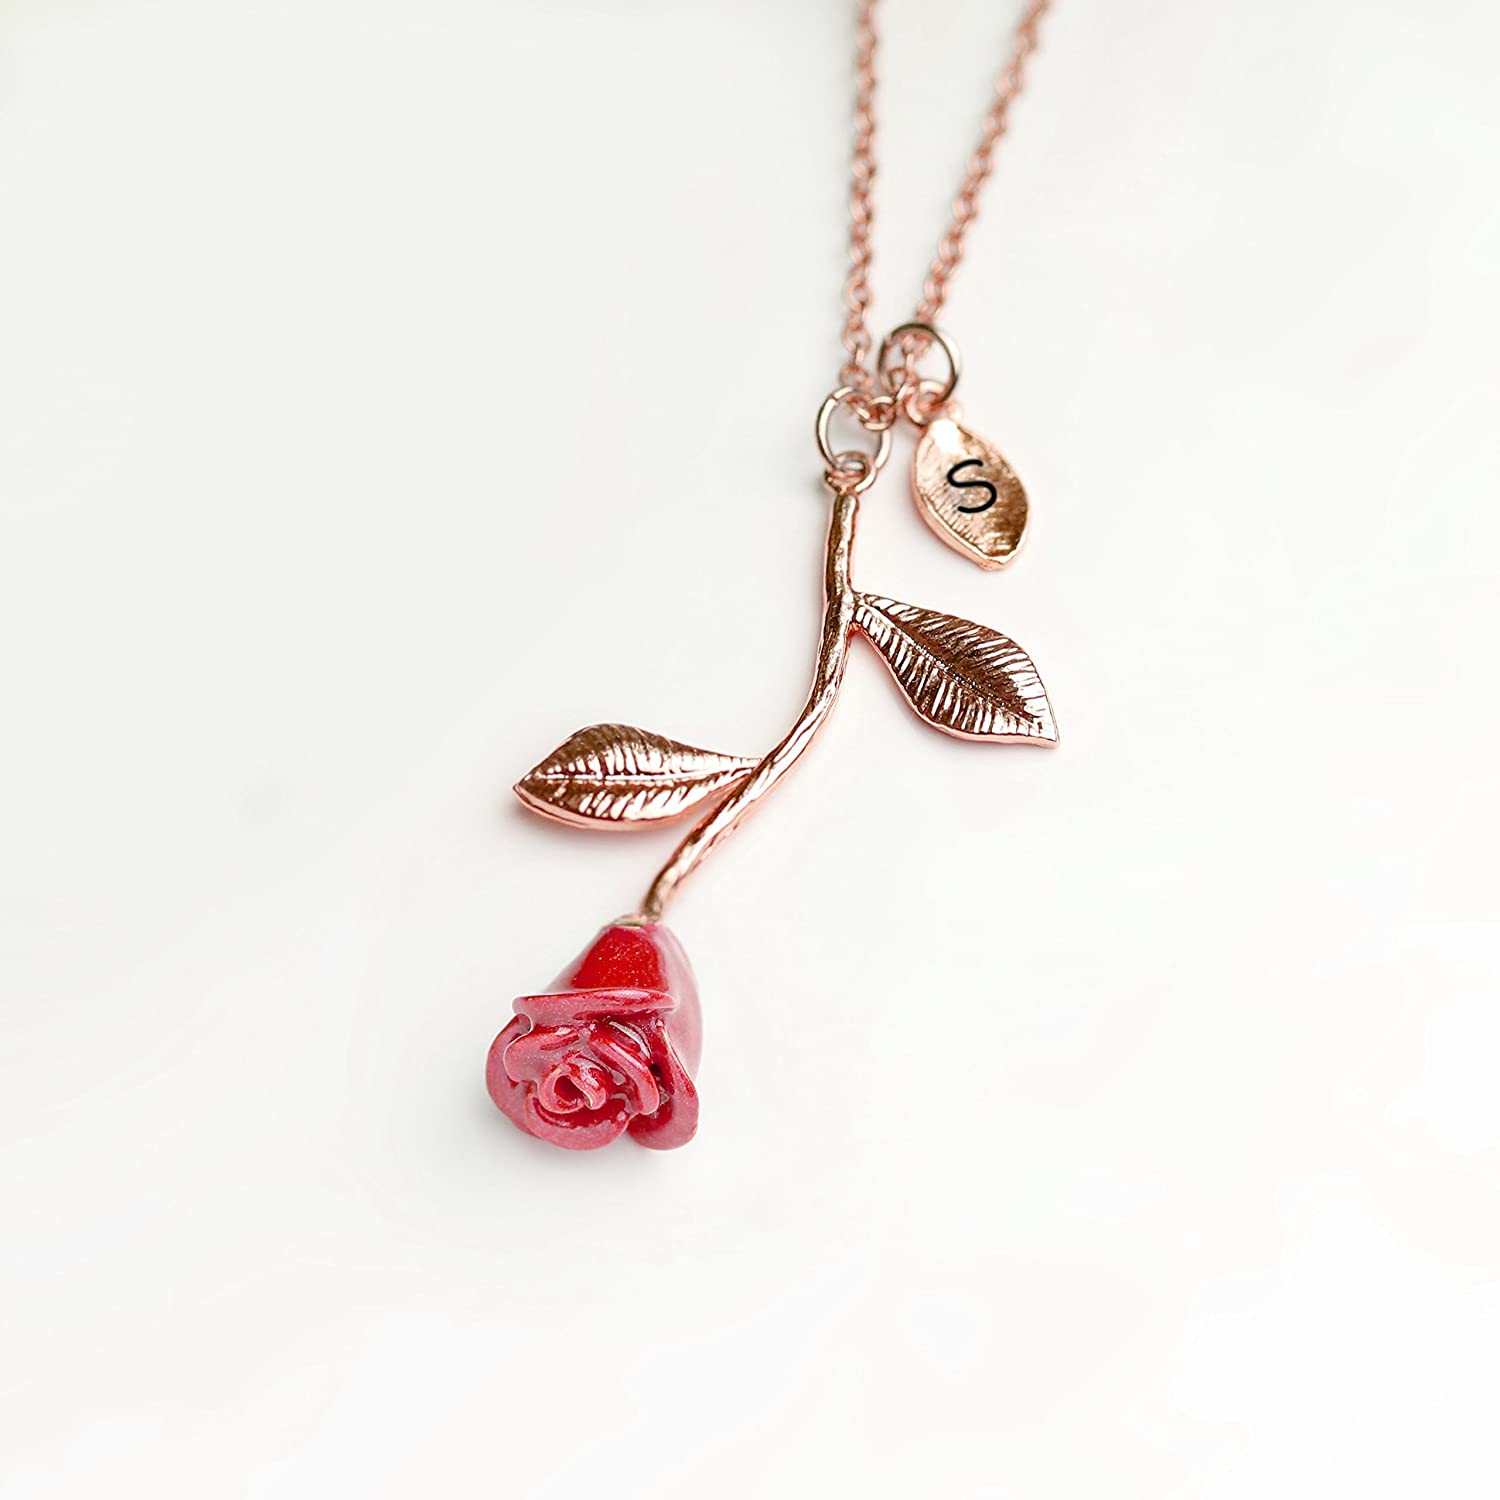 d3b8f34c401e Amazon.com  Rose Gold Rose Necklace Pendant Initial Necklace Beauty and the  Beast Jewelry for Women - 3ERN (S)  Handmade